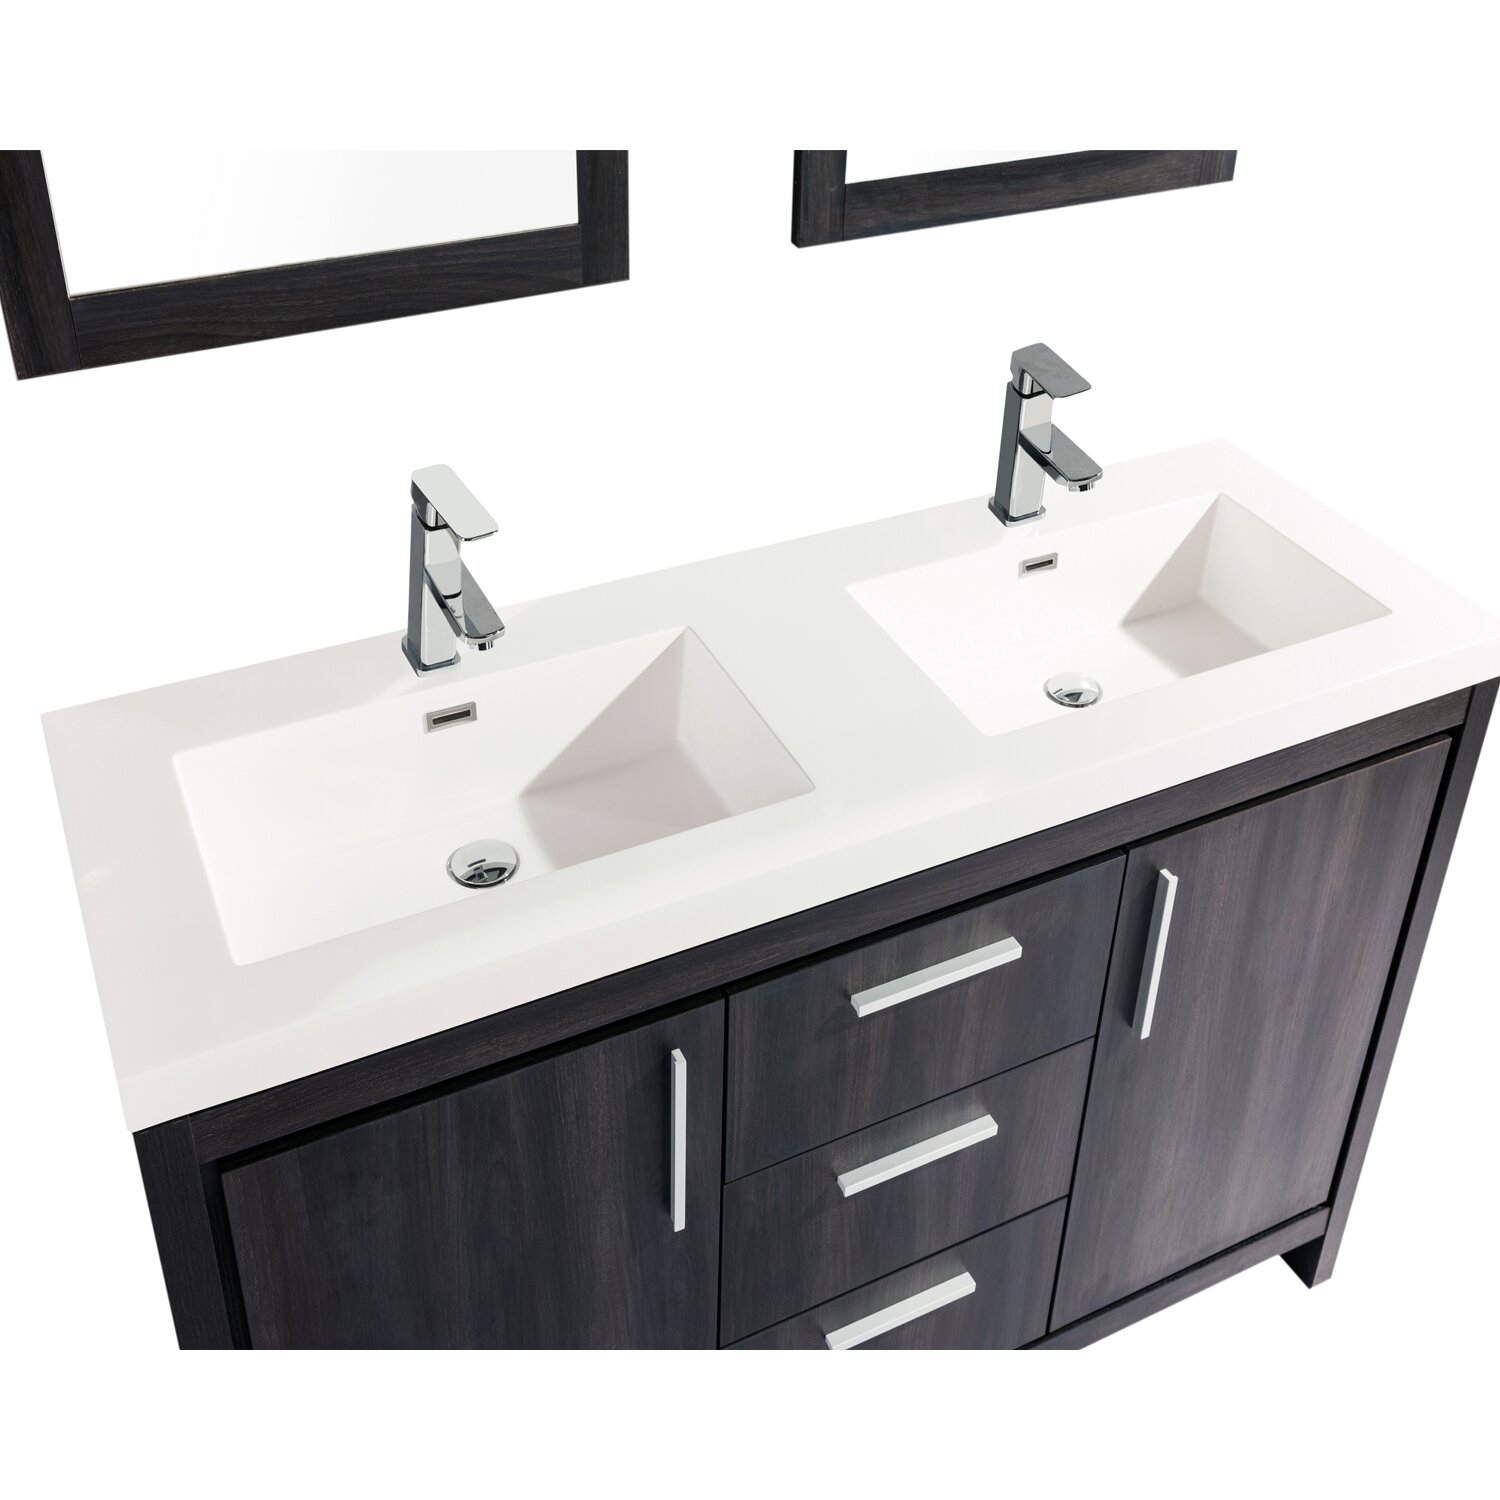 of miami vanity sinks for vanities inspiration incredible bathroom florida fl intended